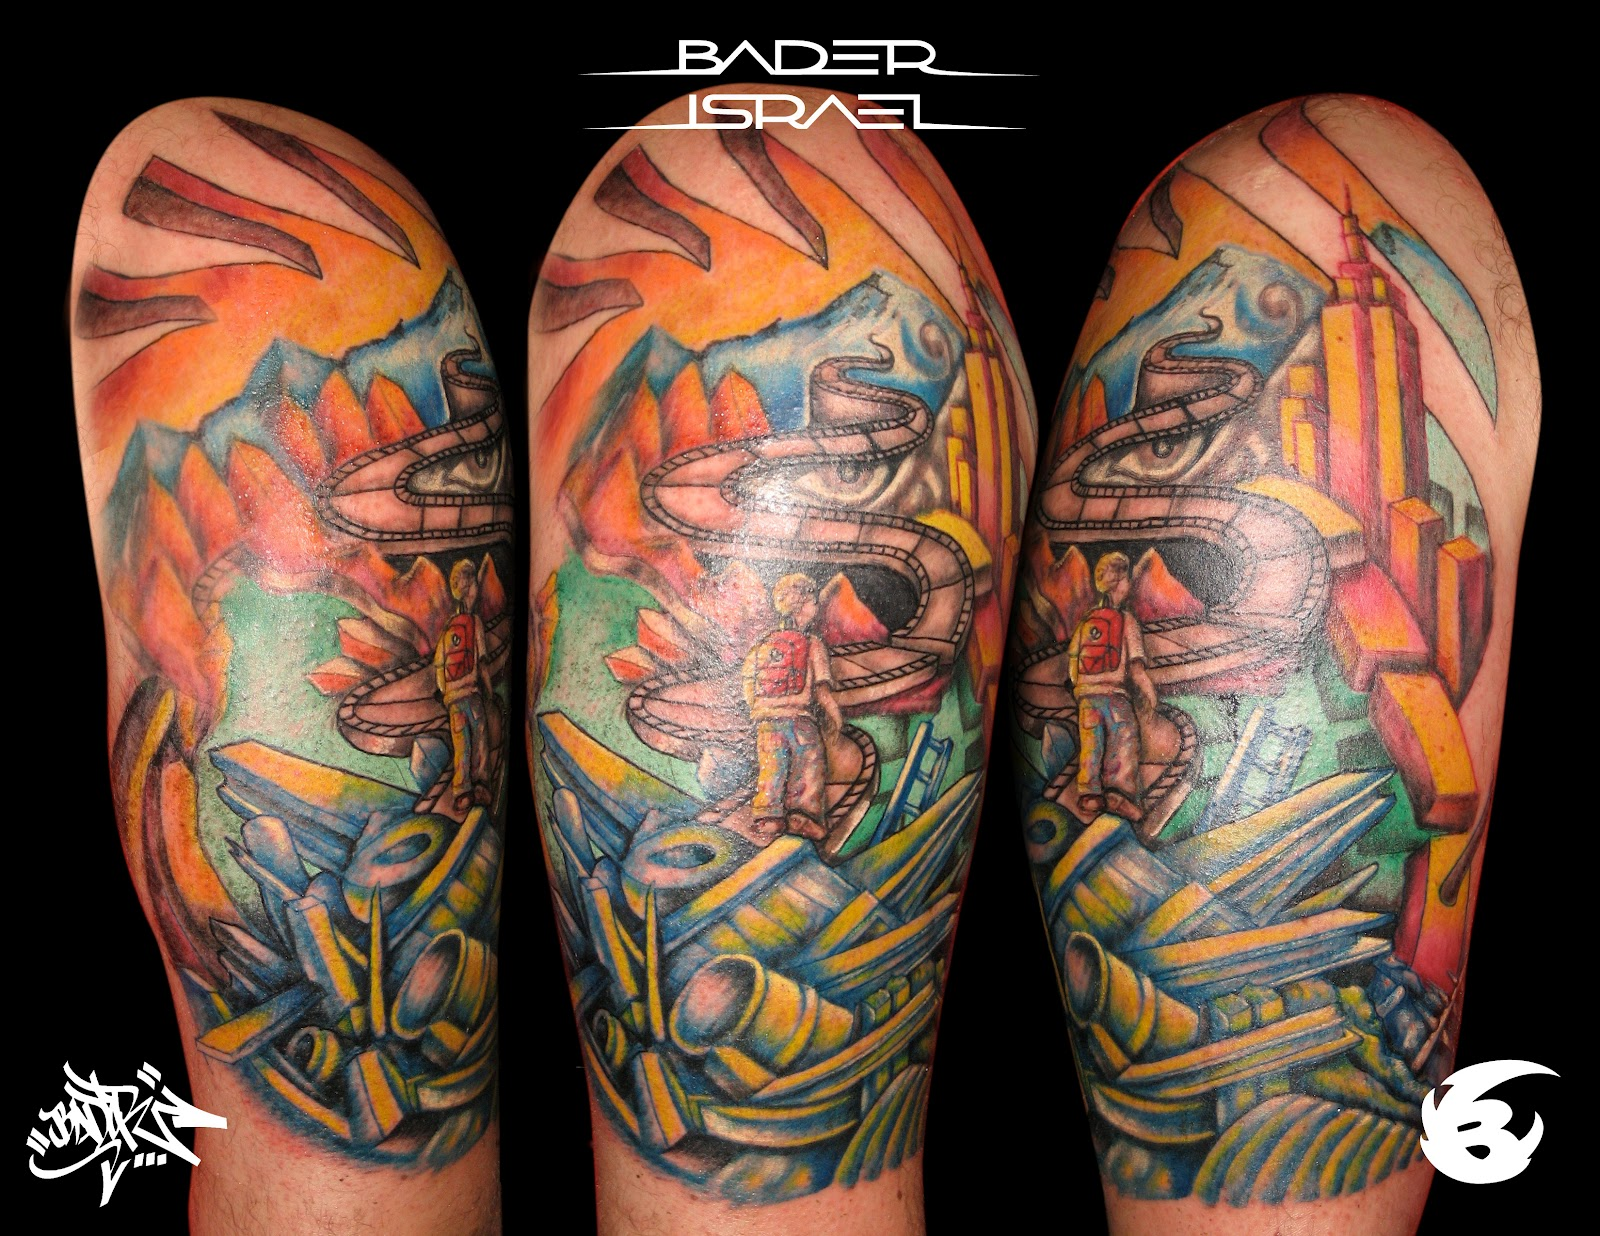 Half Sleeve Graffiti Tattoo Design